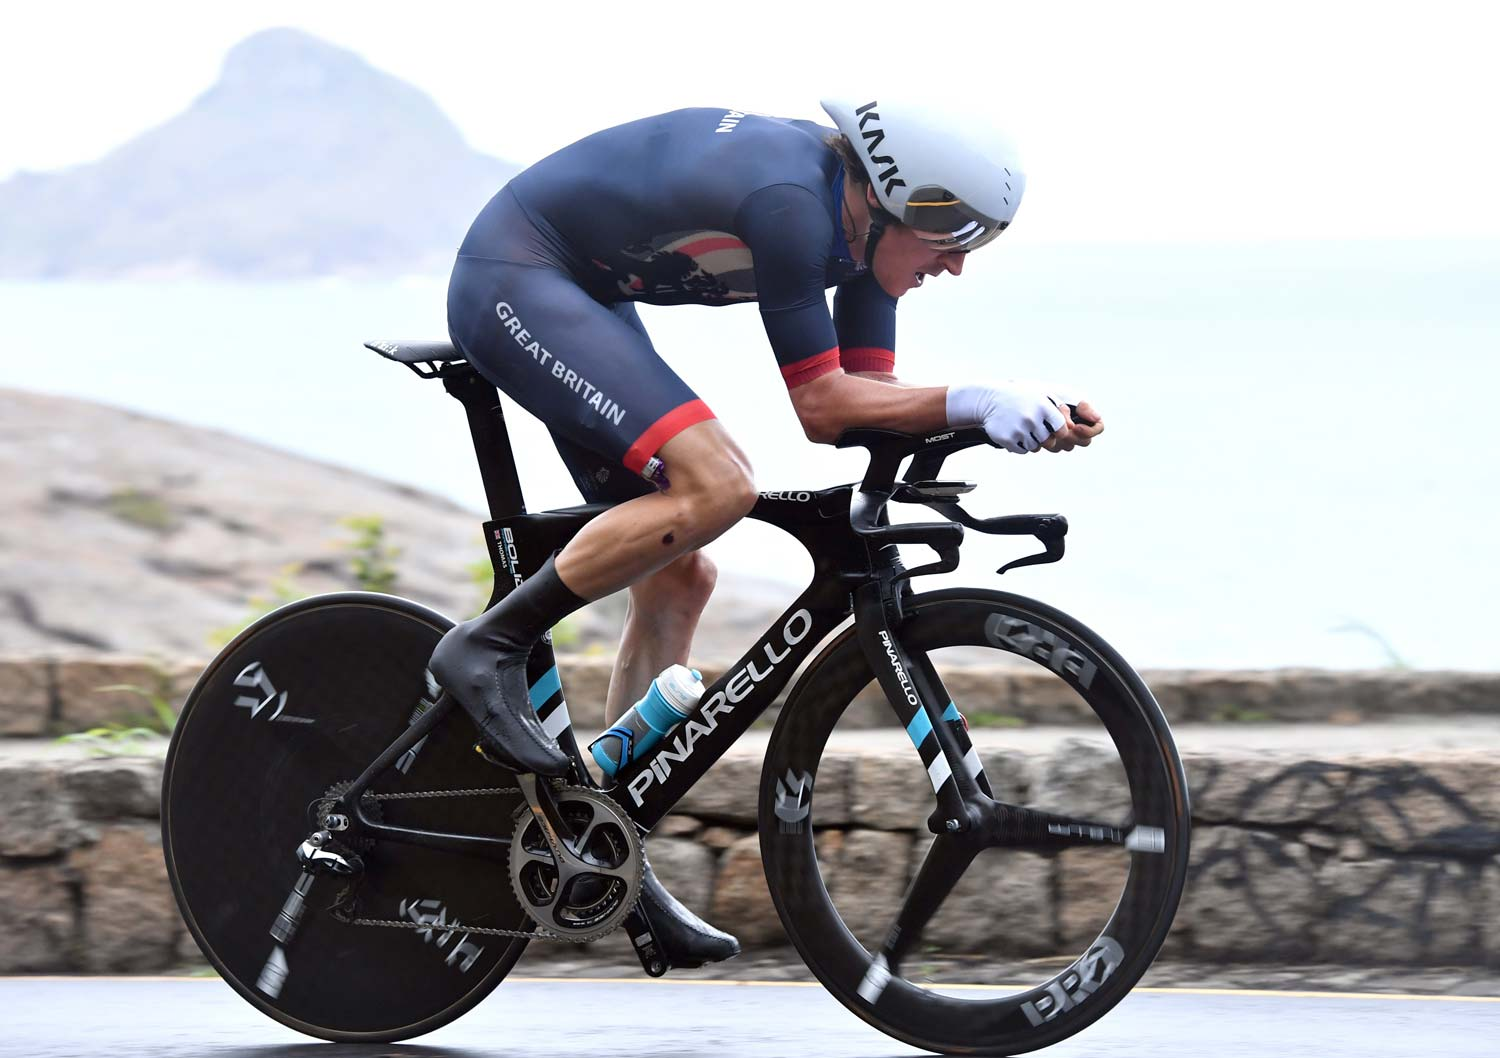 It looks like there's a bit of a change of shape for the TT bars of the Pinarello used by Geraint Thomas... And who needs any more of an excuse to run a photo of a bike like this? Photo: Graham Watson